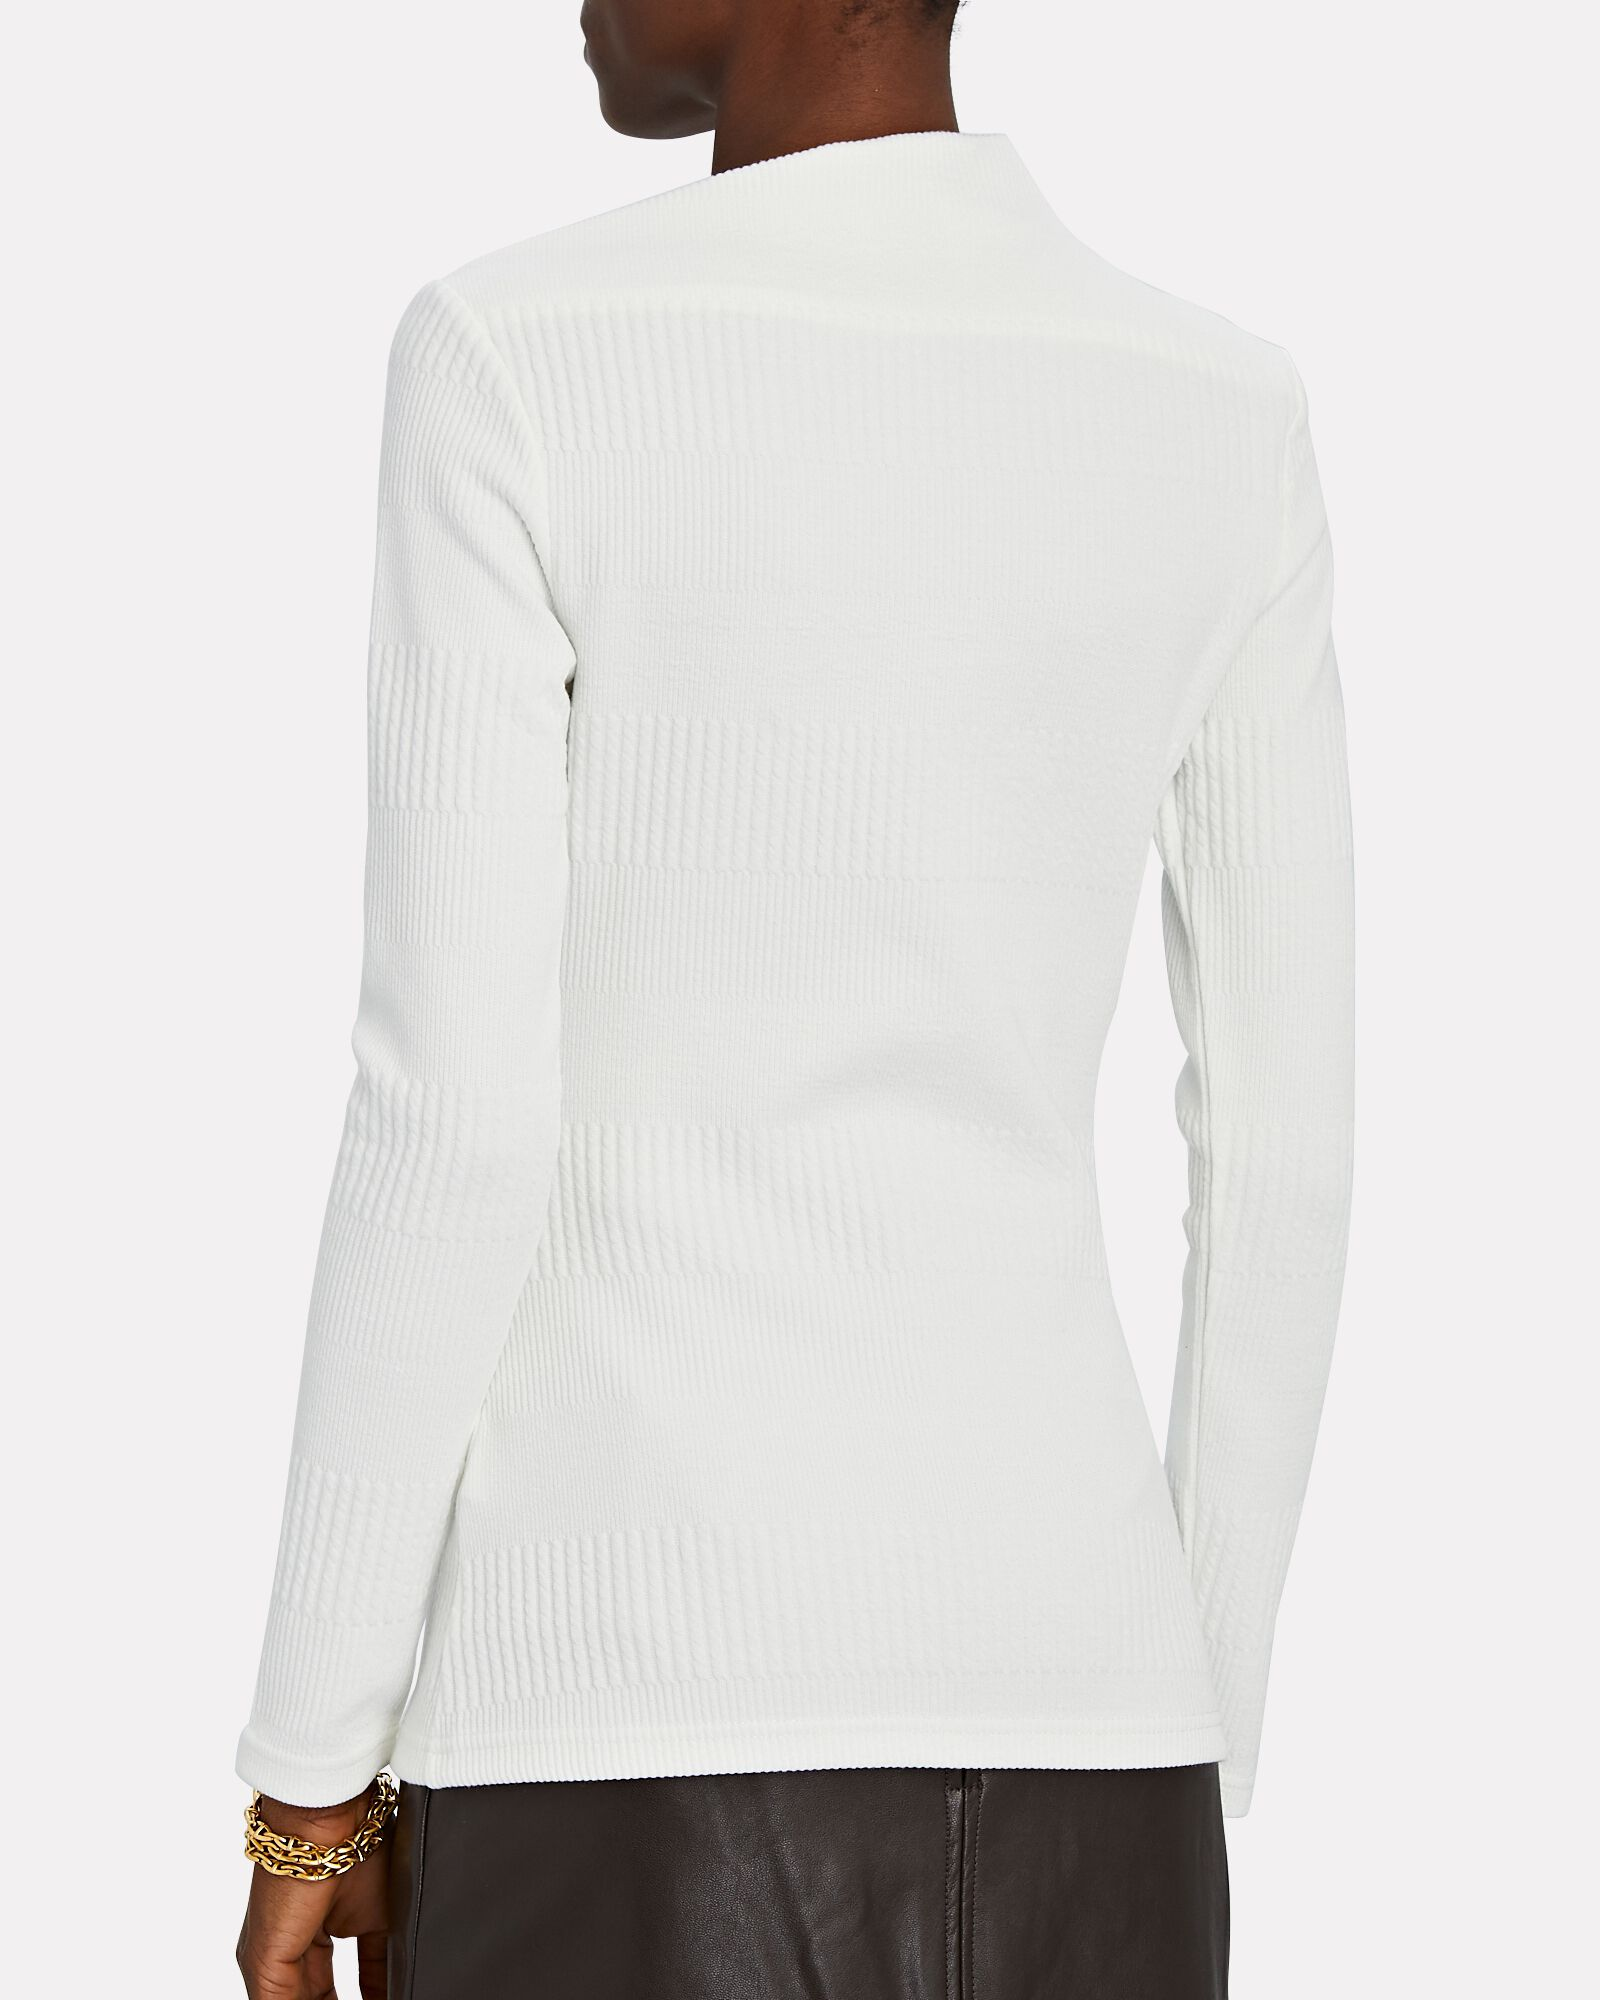 Parkway High Neck Knit Top, IVORY, hi-res